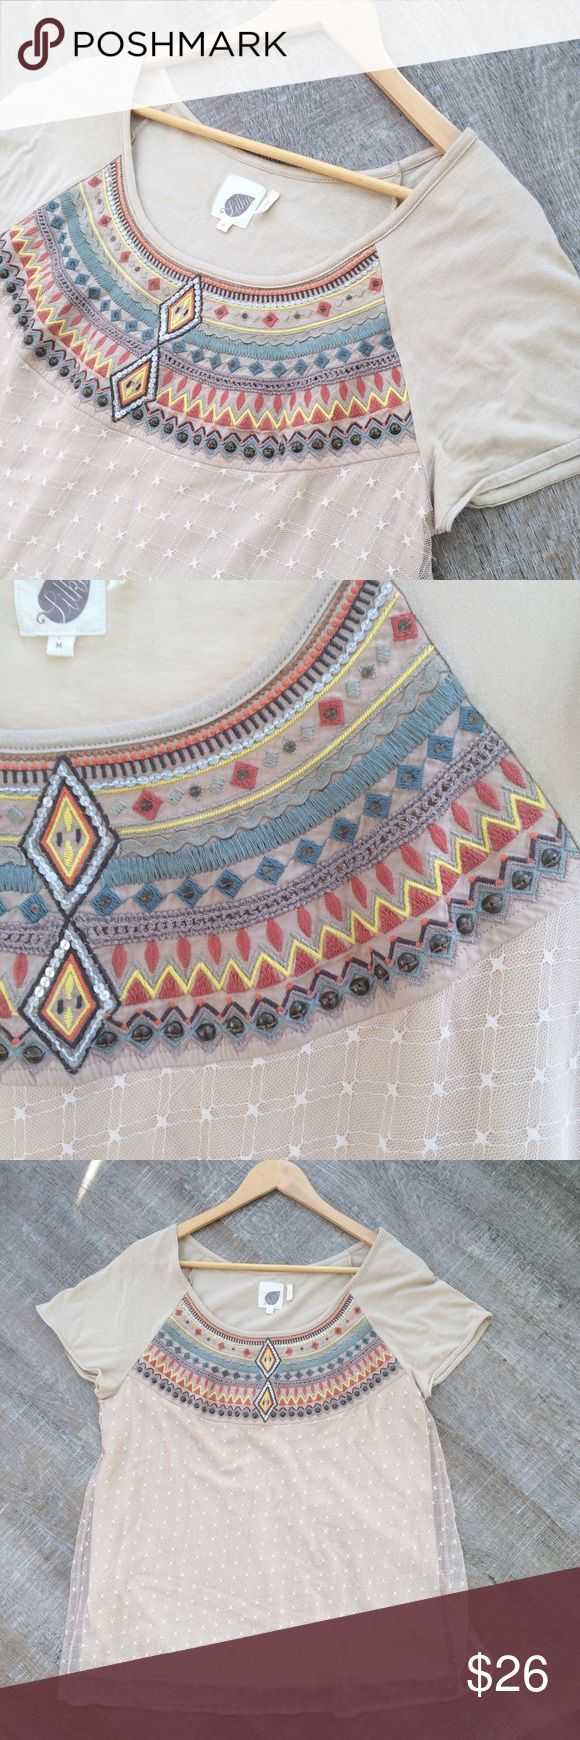 Lilka (Anthropologie) Aztec tee w overlay Gently used Lilka (Anthropologie) Aztec tee w overlay. Tee is 60% Pima cotton (very soft!) and 40% modal. The overlay is 100% mesh nylon. Size M. Offers welcome! Anthropologie Tops Tees - Short Sleeve